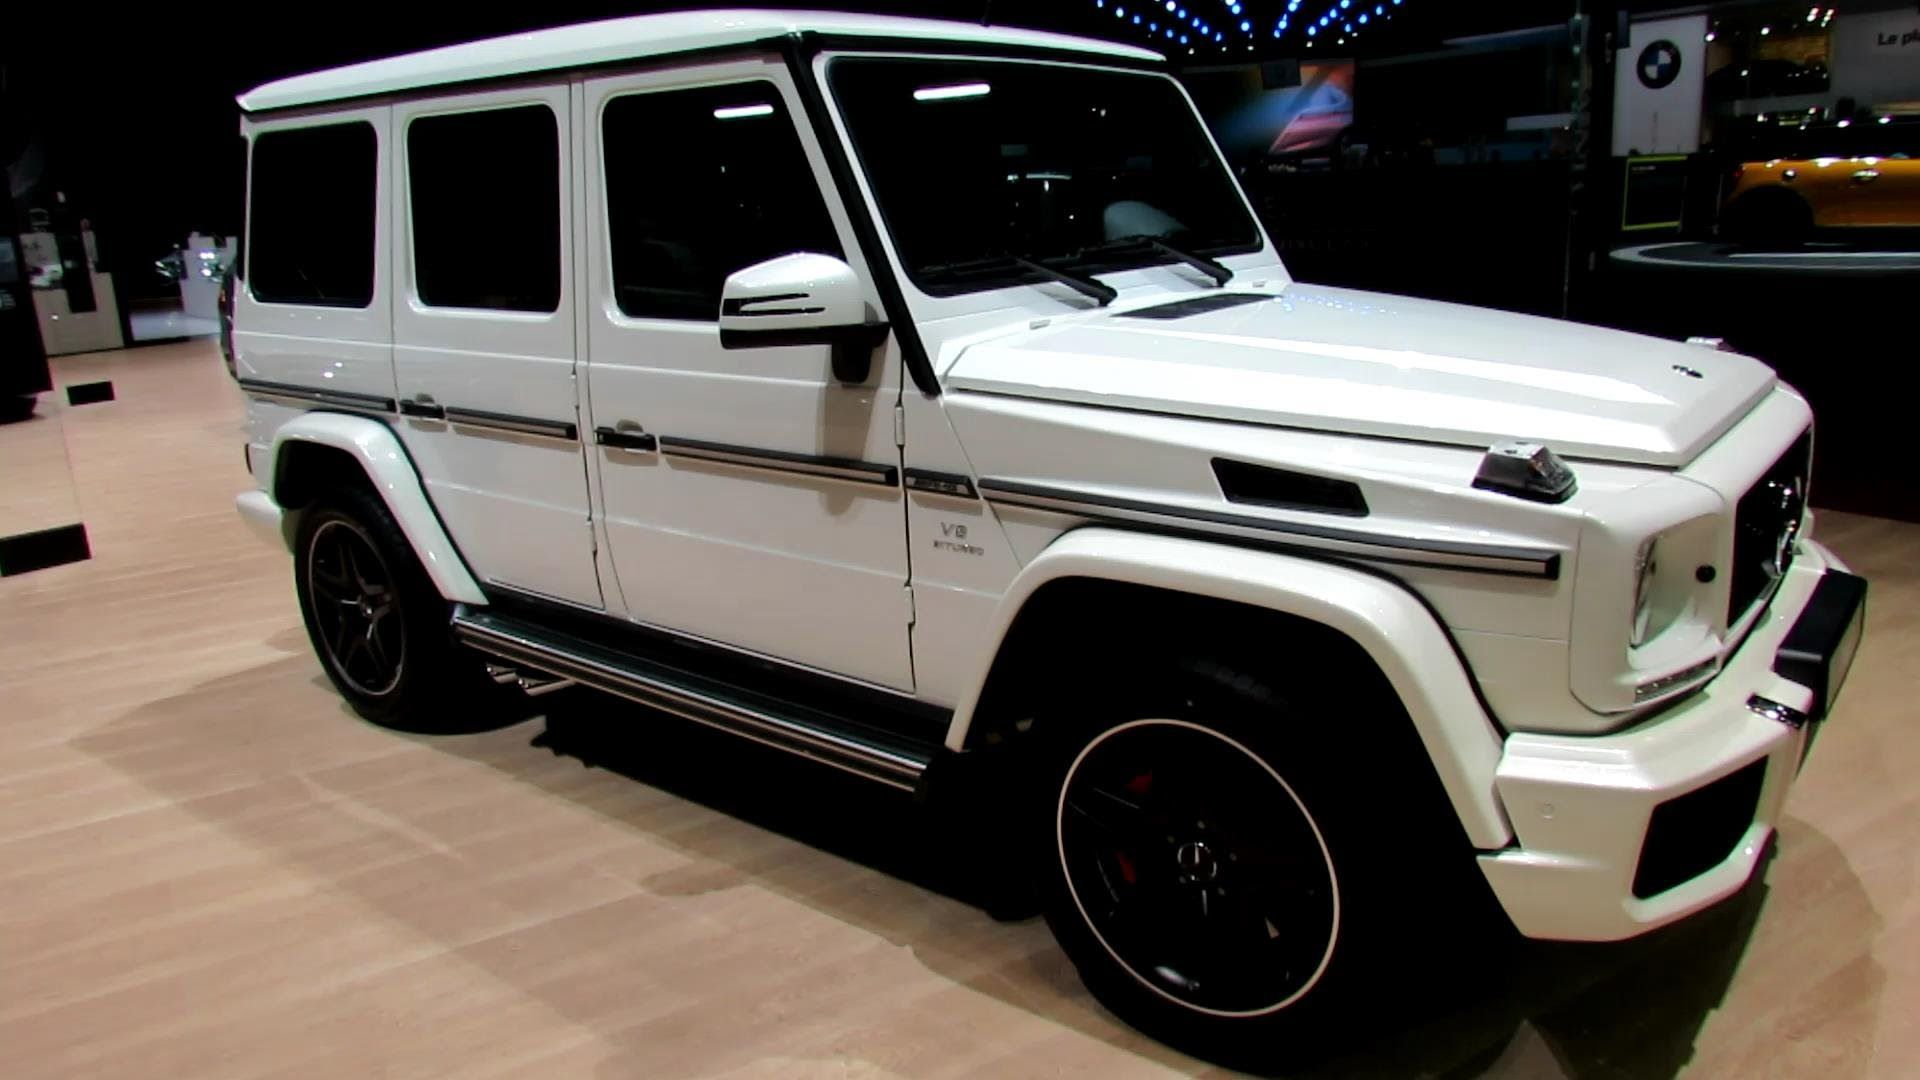 1000 ideas about mercedes g wagon interior on pinterest g wagon mercedes g wagon and g class - Mercedes G Wagon 3rd Row Seat